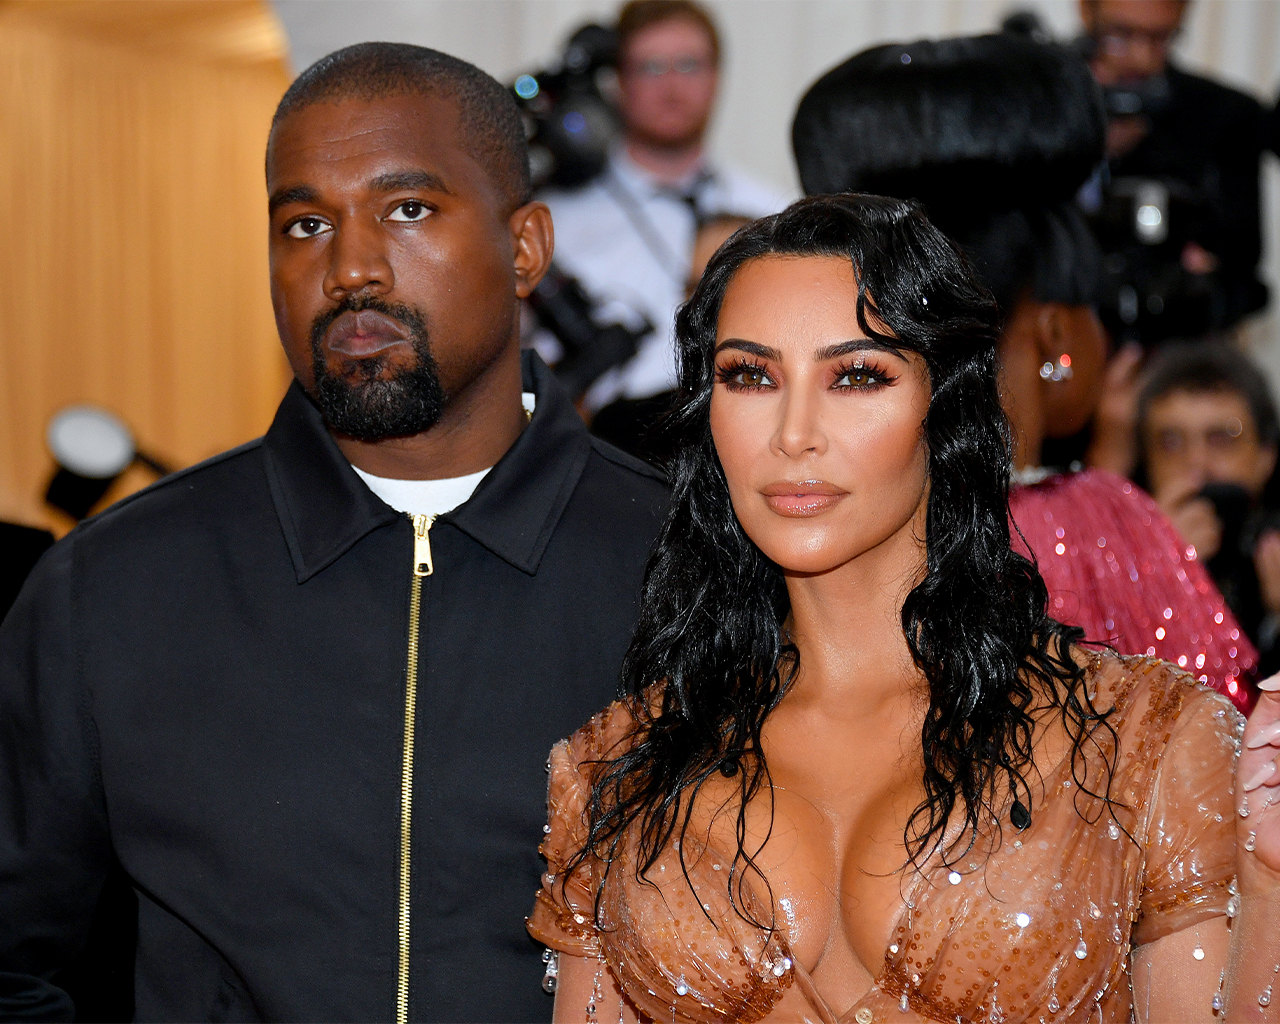 KIM KARDASHIAN REVEALS WHY SHE FILED FOR DIVORCE FROM KANYE WEST